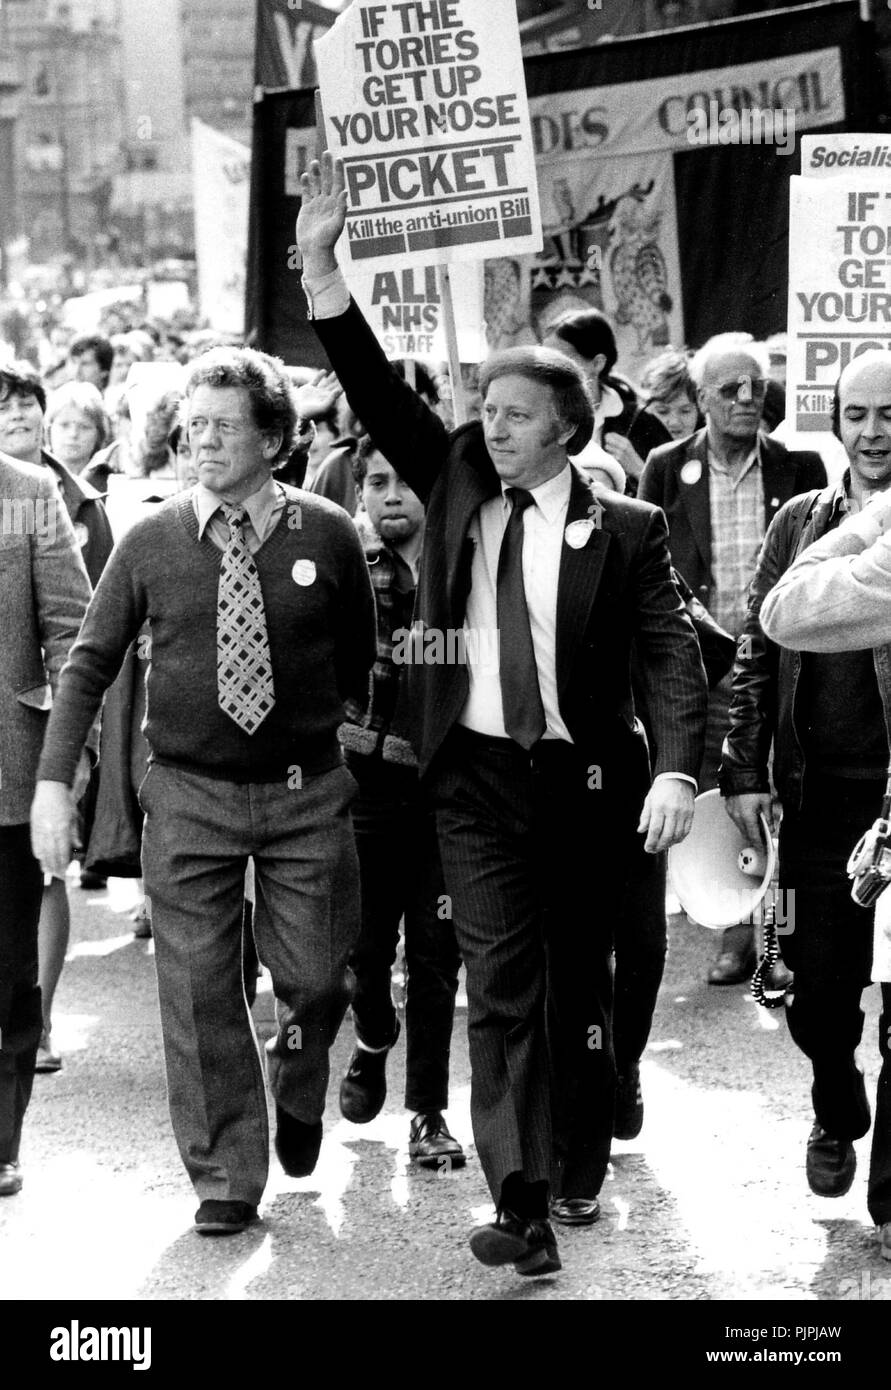 Arthur Scargill miners' leader with pickets - Stock Image